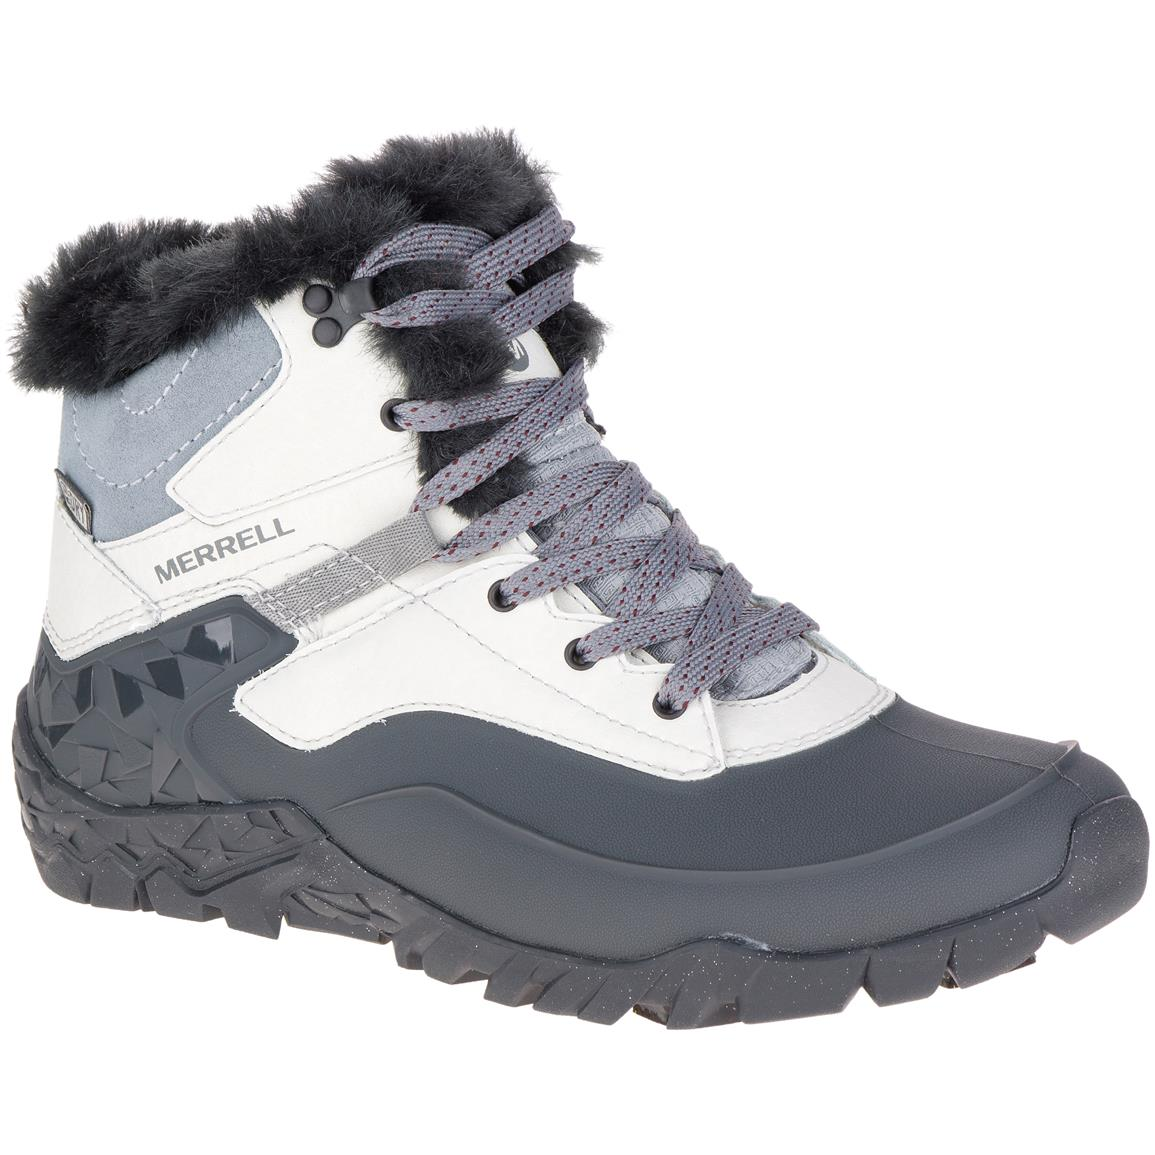 Merrell Women's Aurora 6 Ice+Waterproof Hiking Boots, Ash